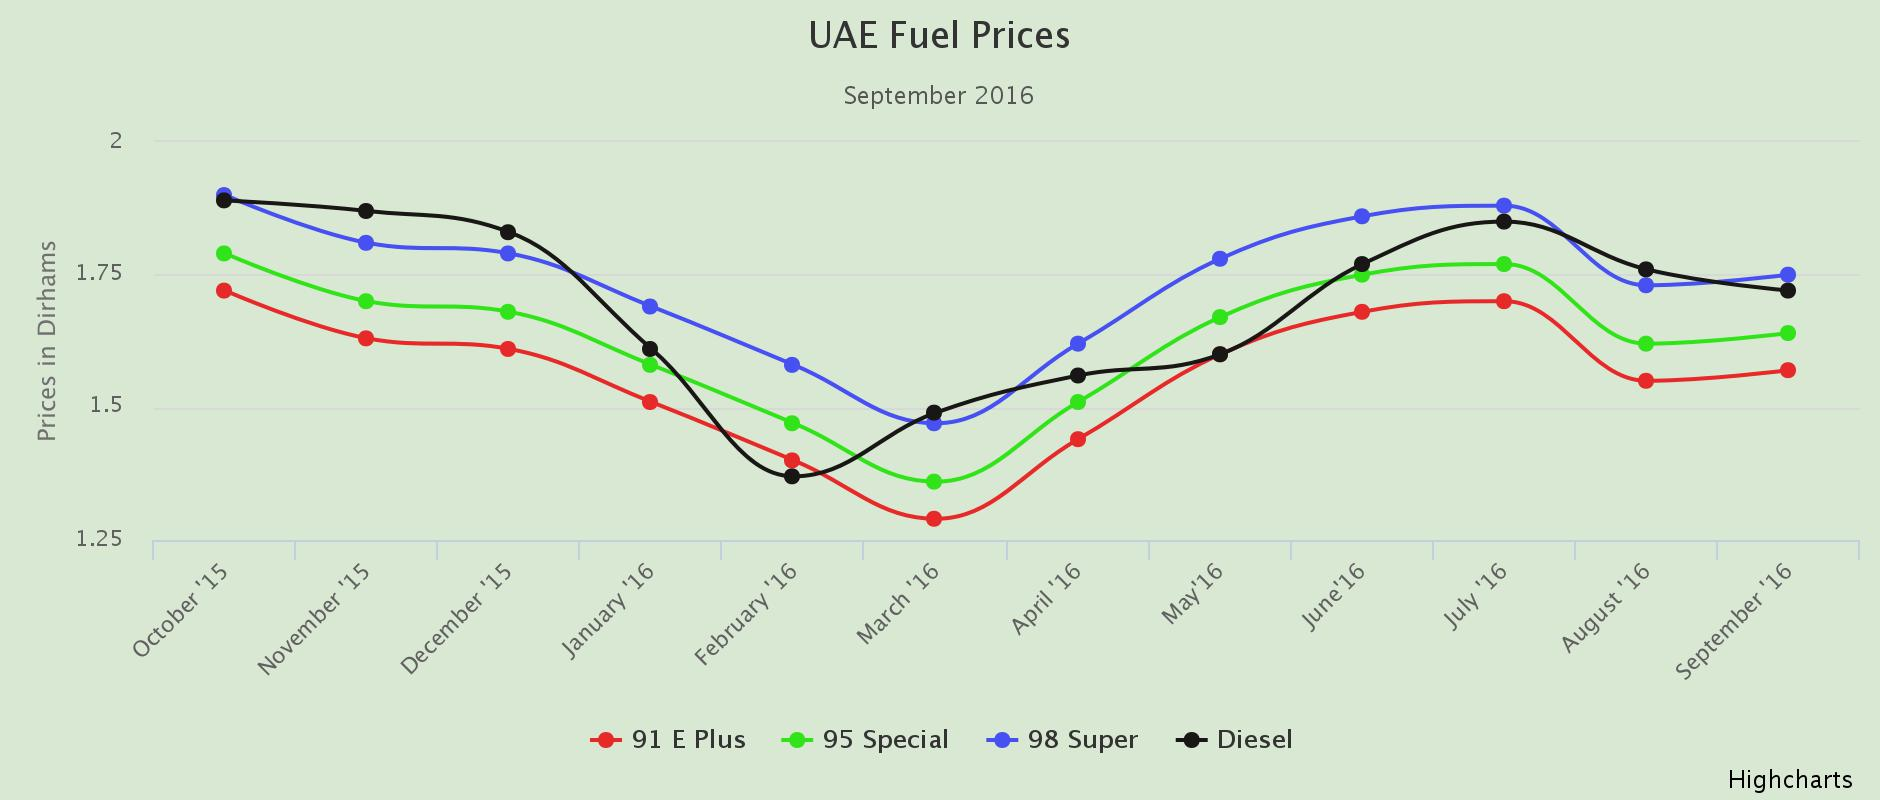 Fuel prices in UAE for September 2016